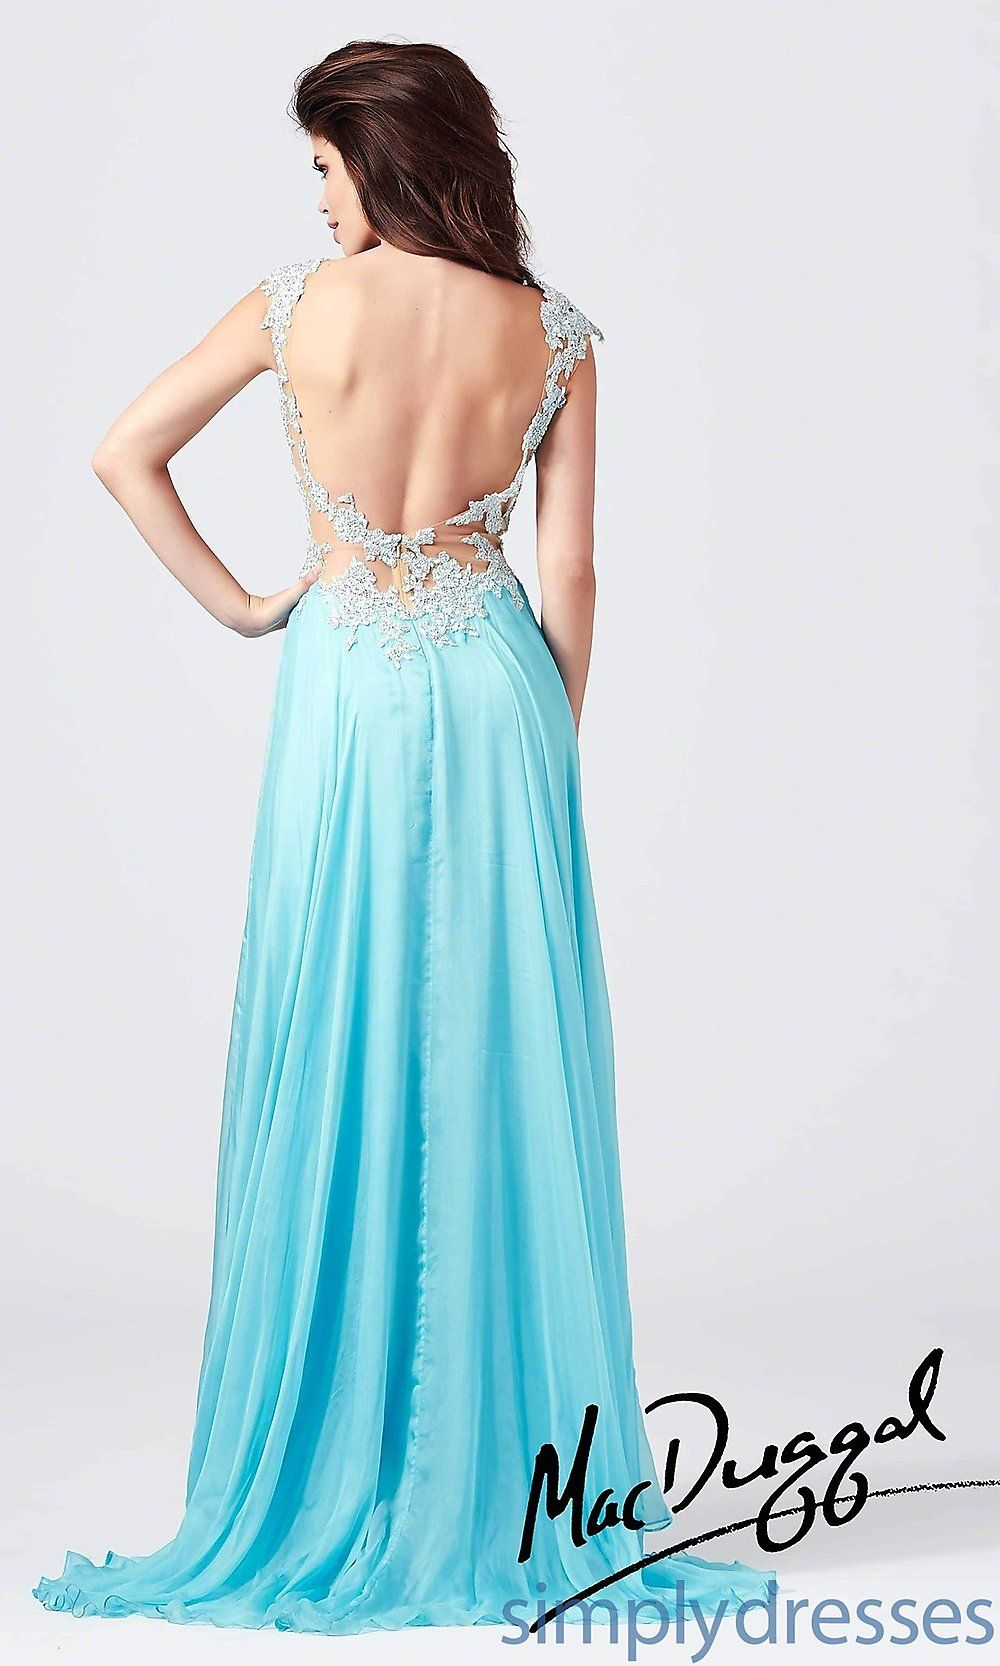 Pin by Tamara Auld on Prom Dresses! | Pinterest | Prom and Detail